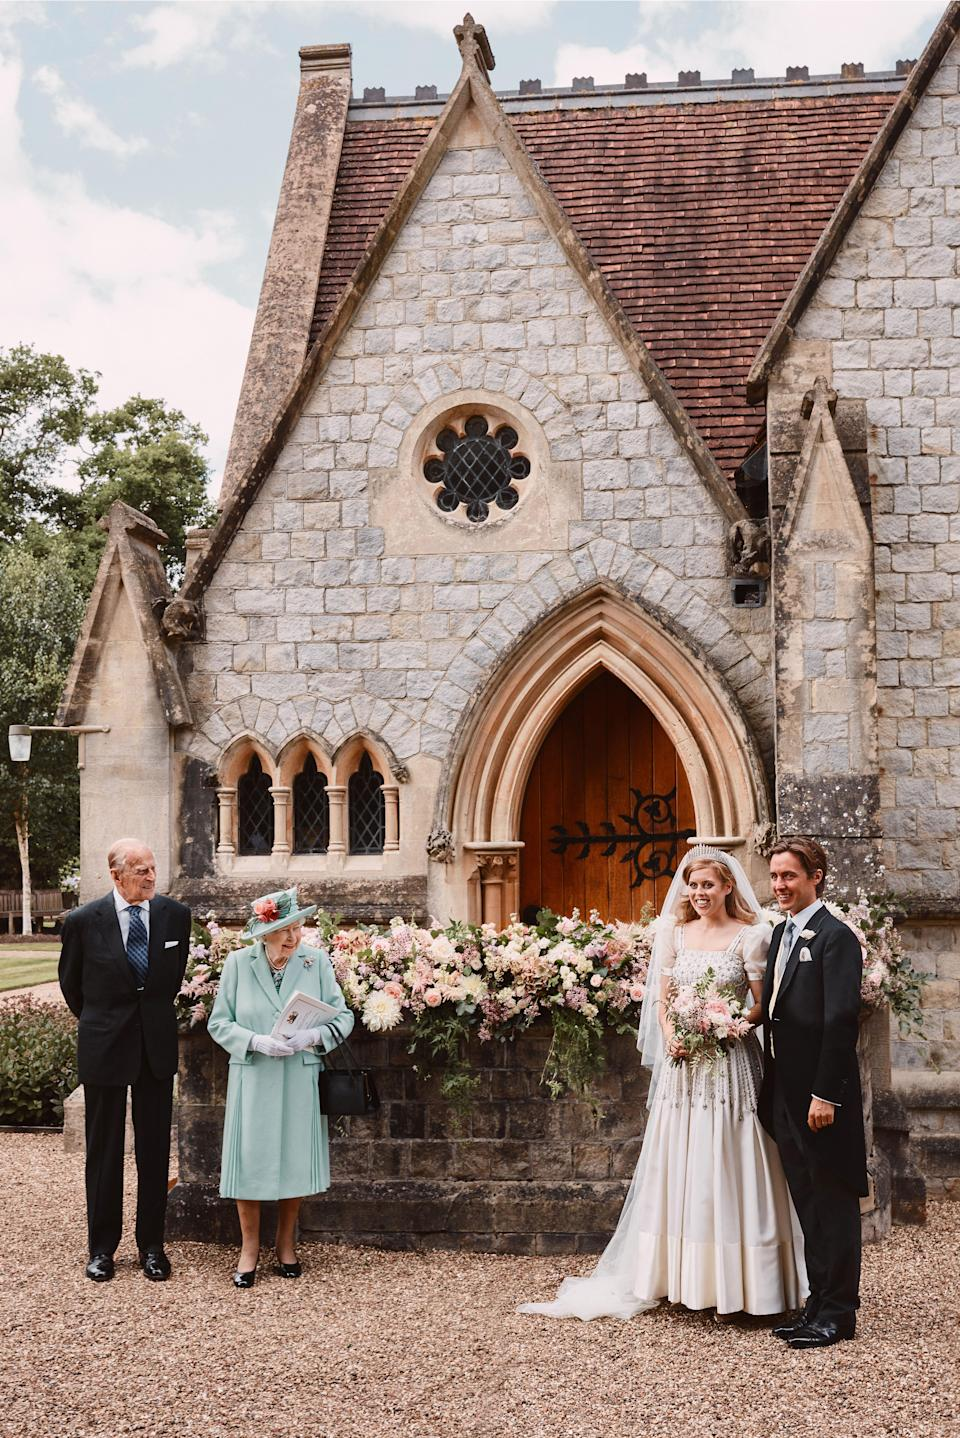 Princess Beatrice and Edoardo Mapelli Mozzi outside The Royal Chapel of All Saints at Royal Lodge, Windsor after their wedding with Queen Elizabeth II and the Duke of Edinburgh. (Benjamin Wheeler/PA Wire)